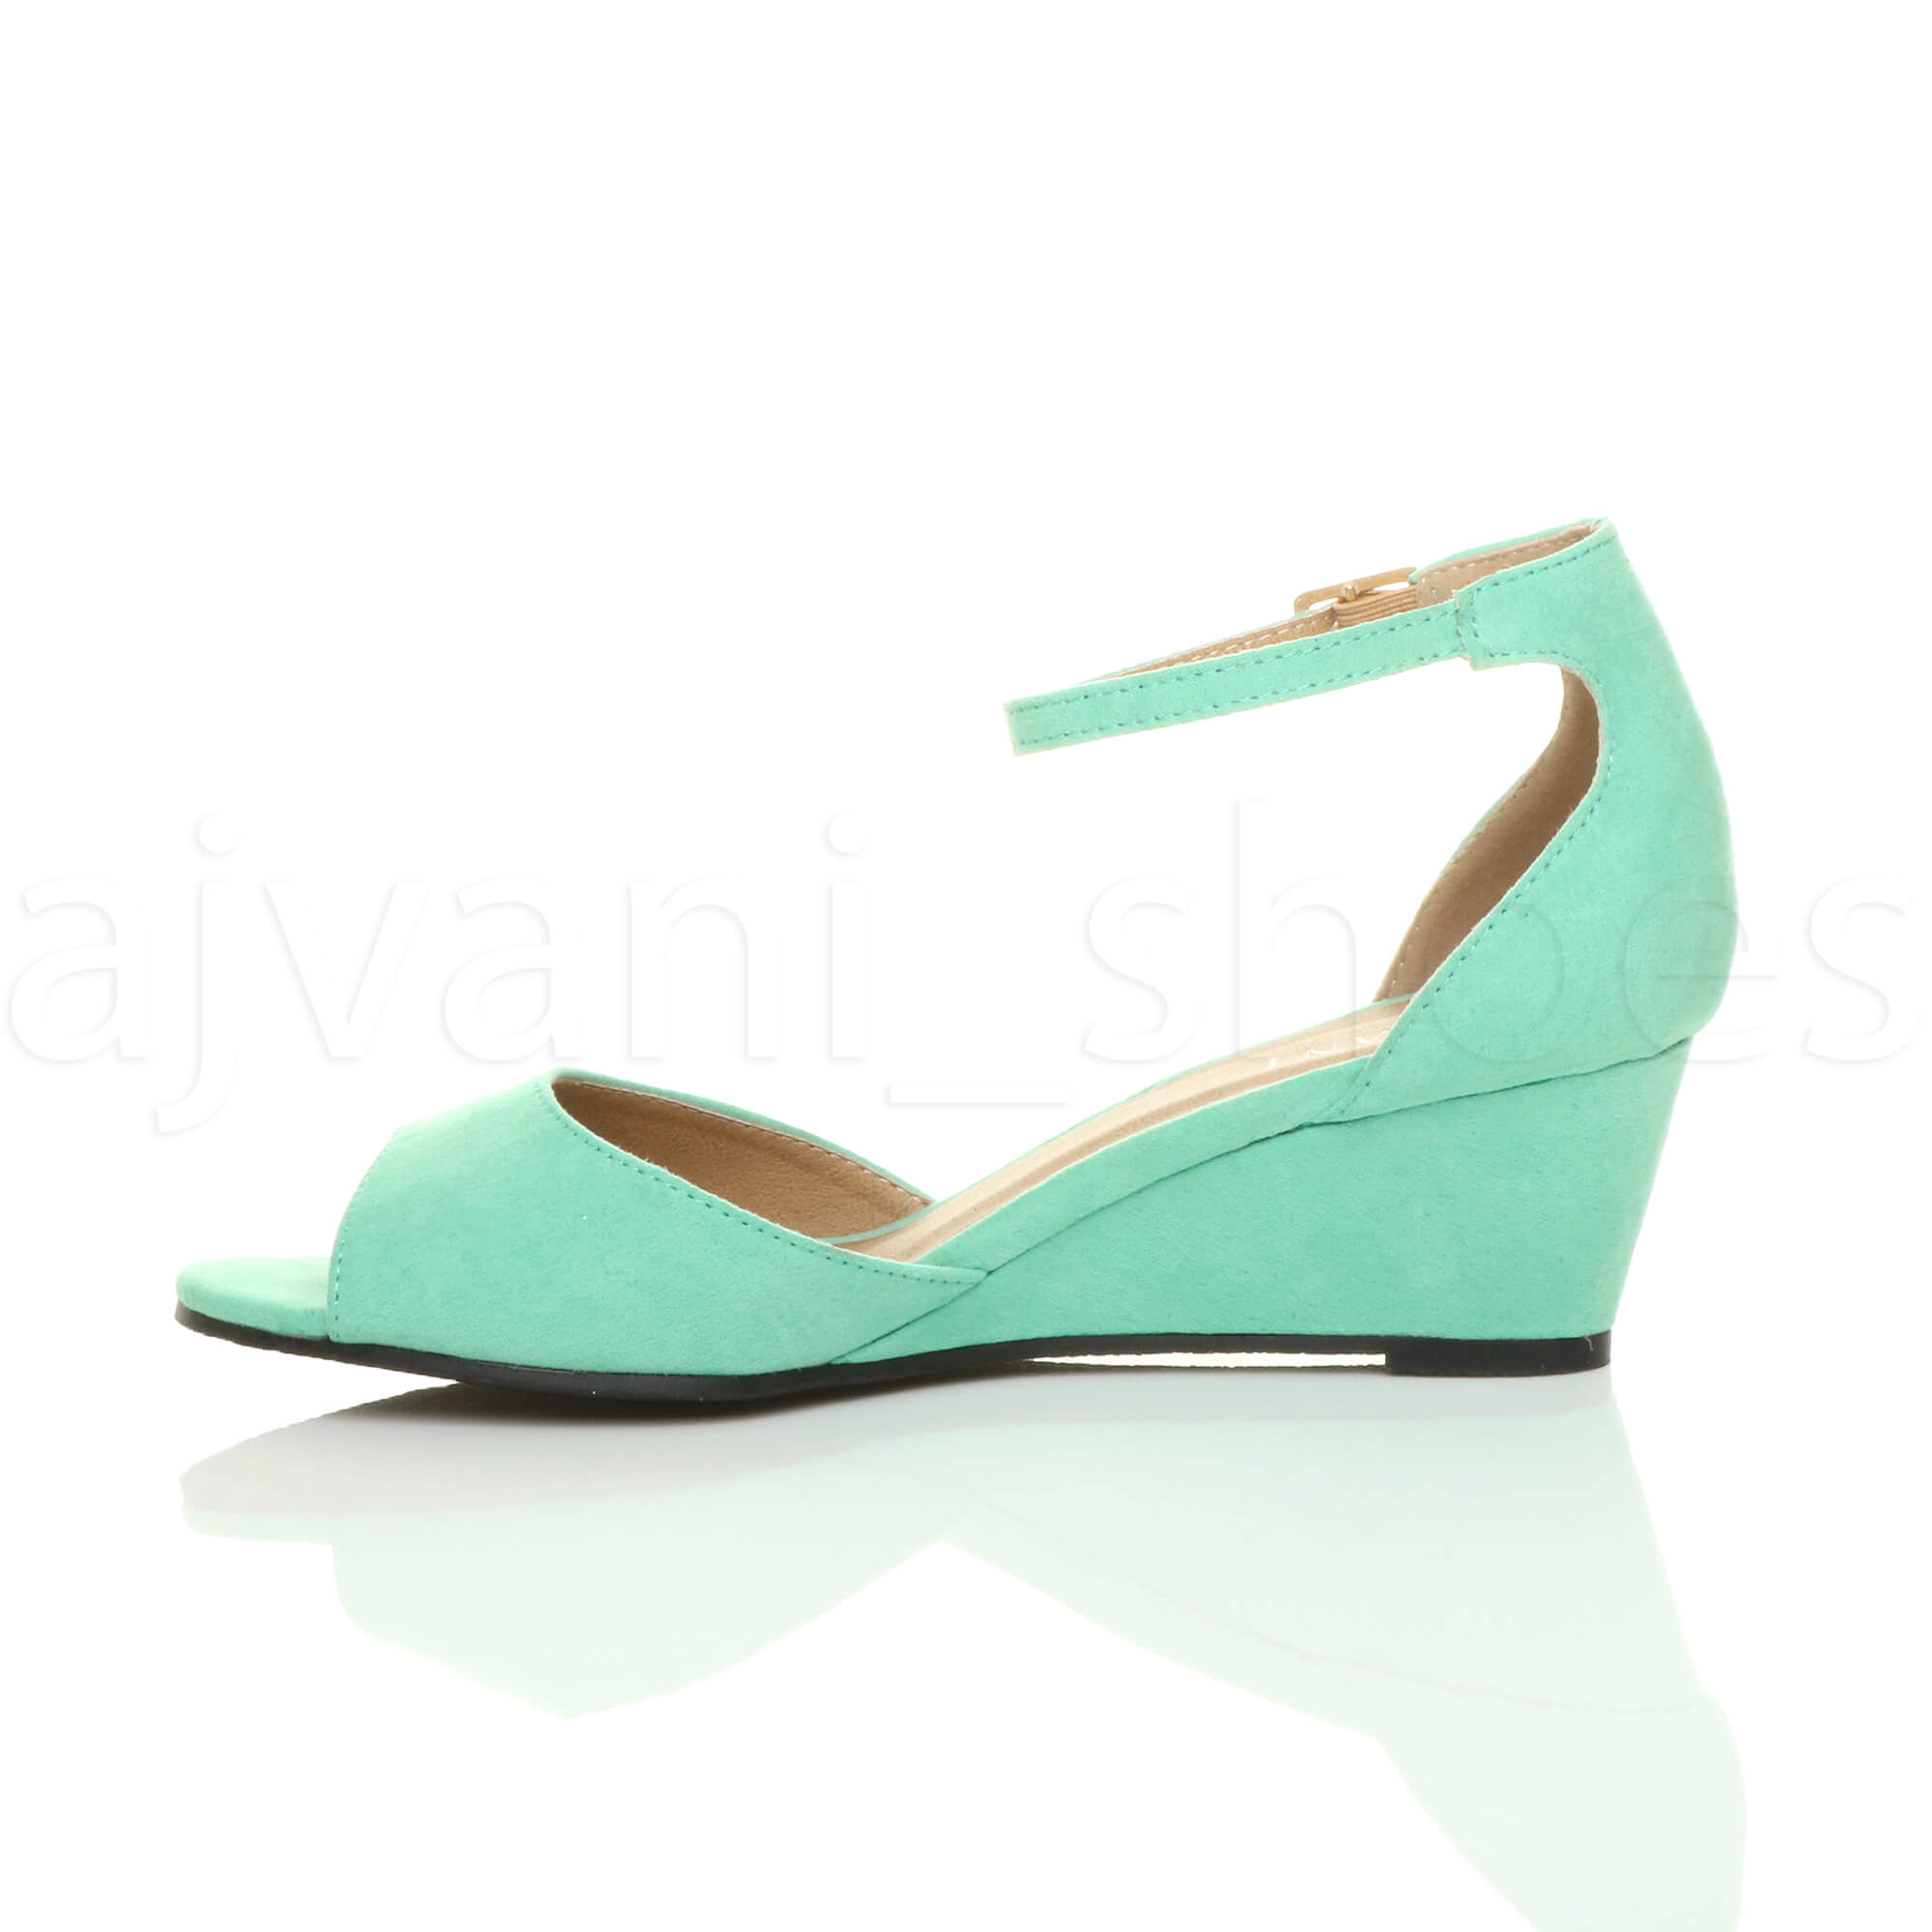 WOMENS-LADIES-LOW-MID-WEDGE-HEEL-ANKLE-STRAP-SMART-CASUAL-EVENING-SANDALS-SIZE thumbnail 76